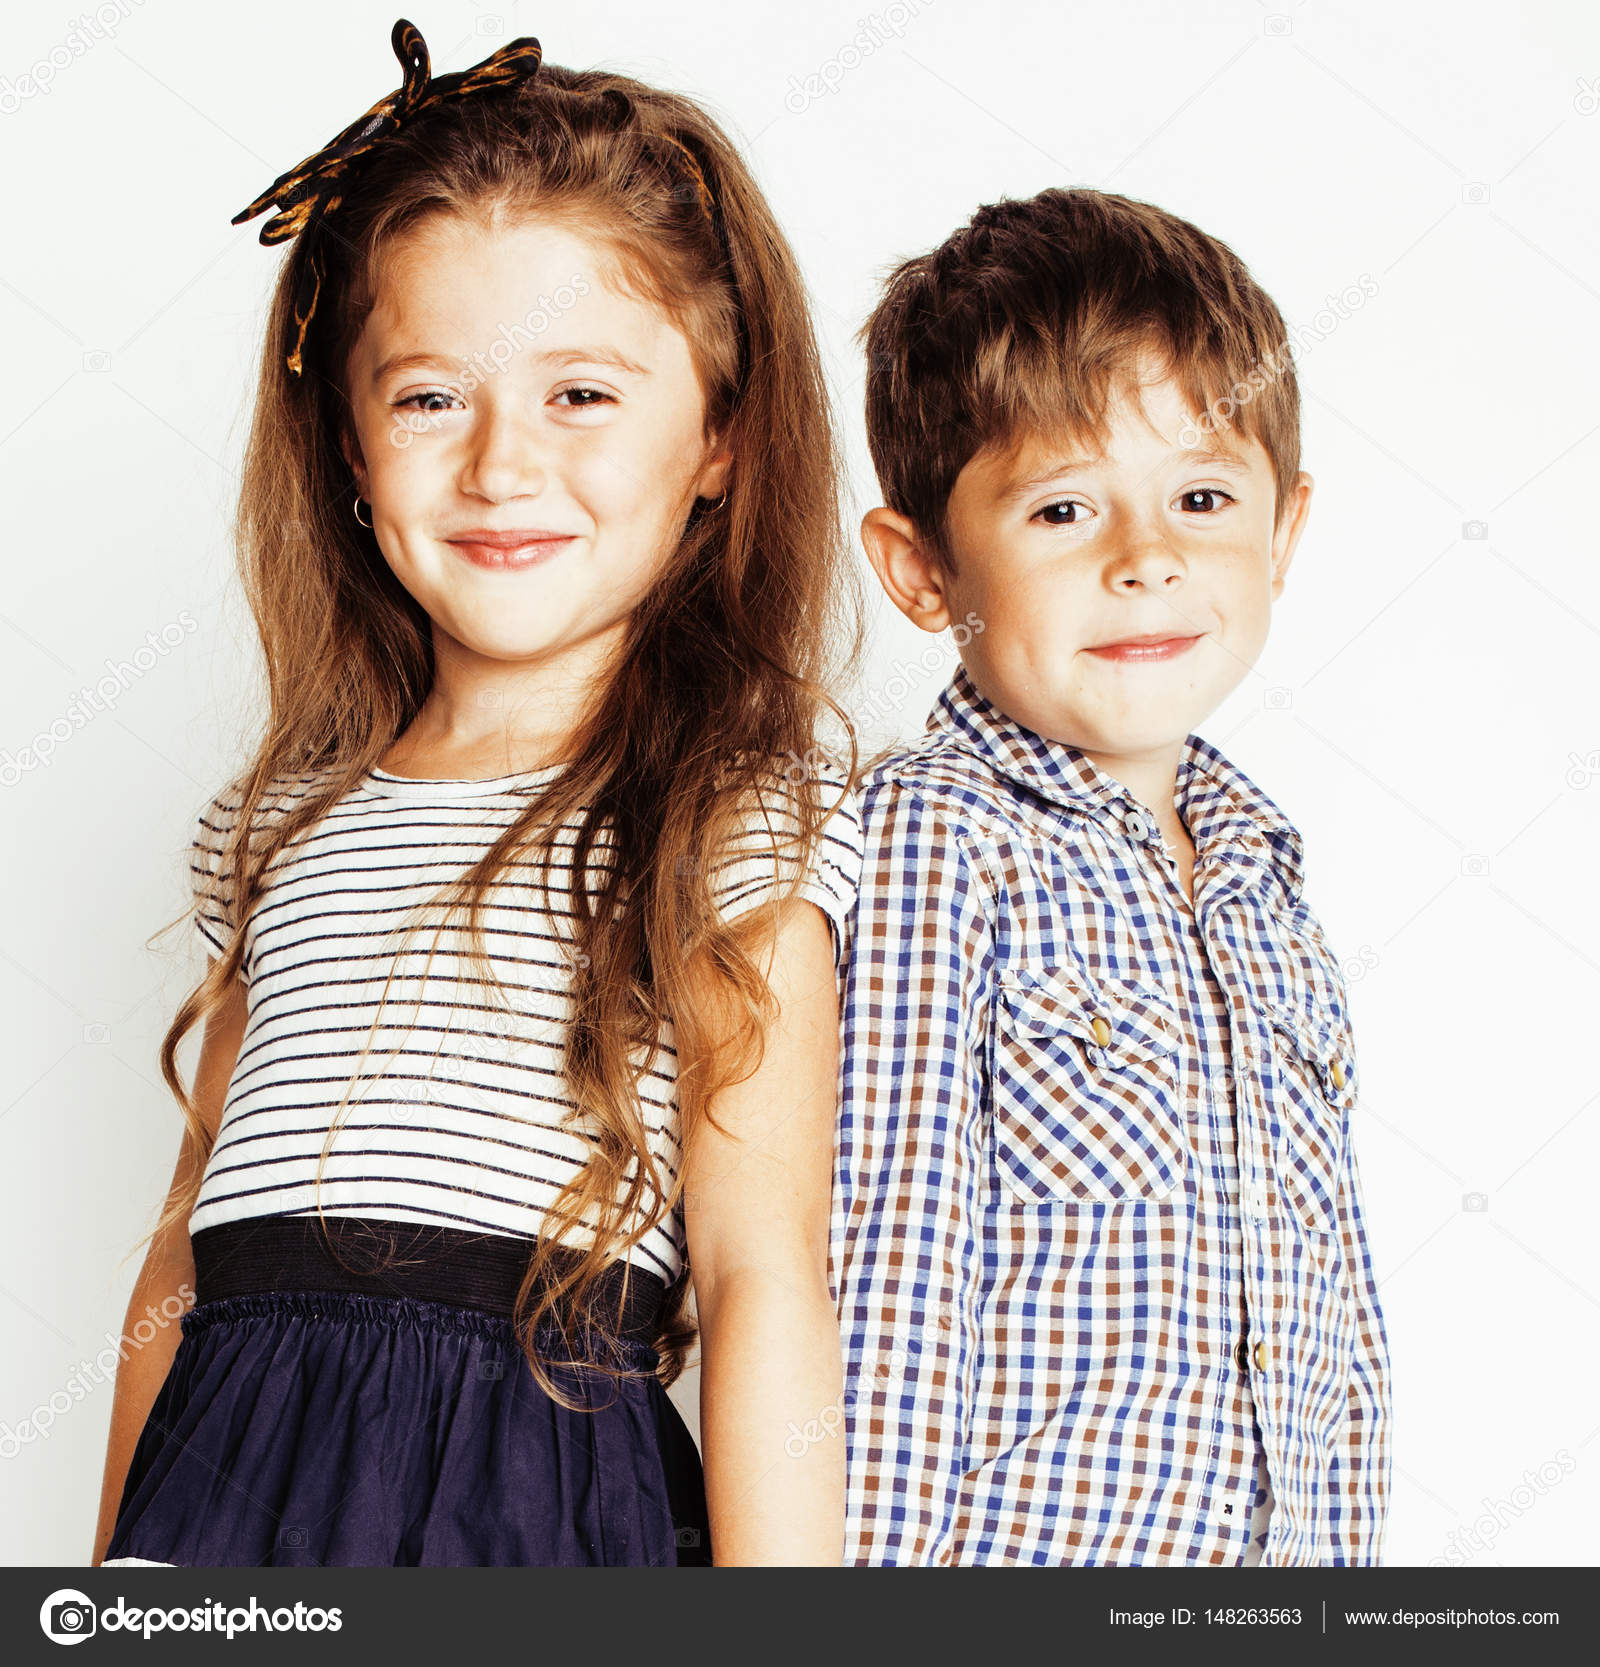 little cute boy and girl hugging playing on white background, happy